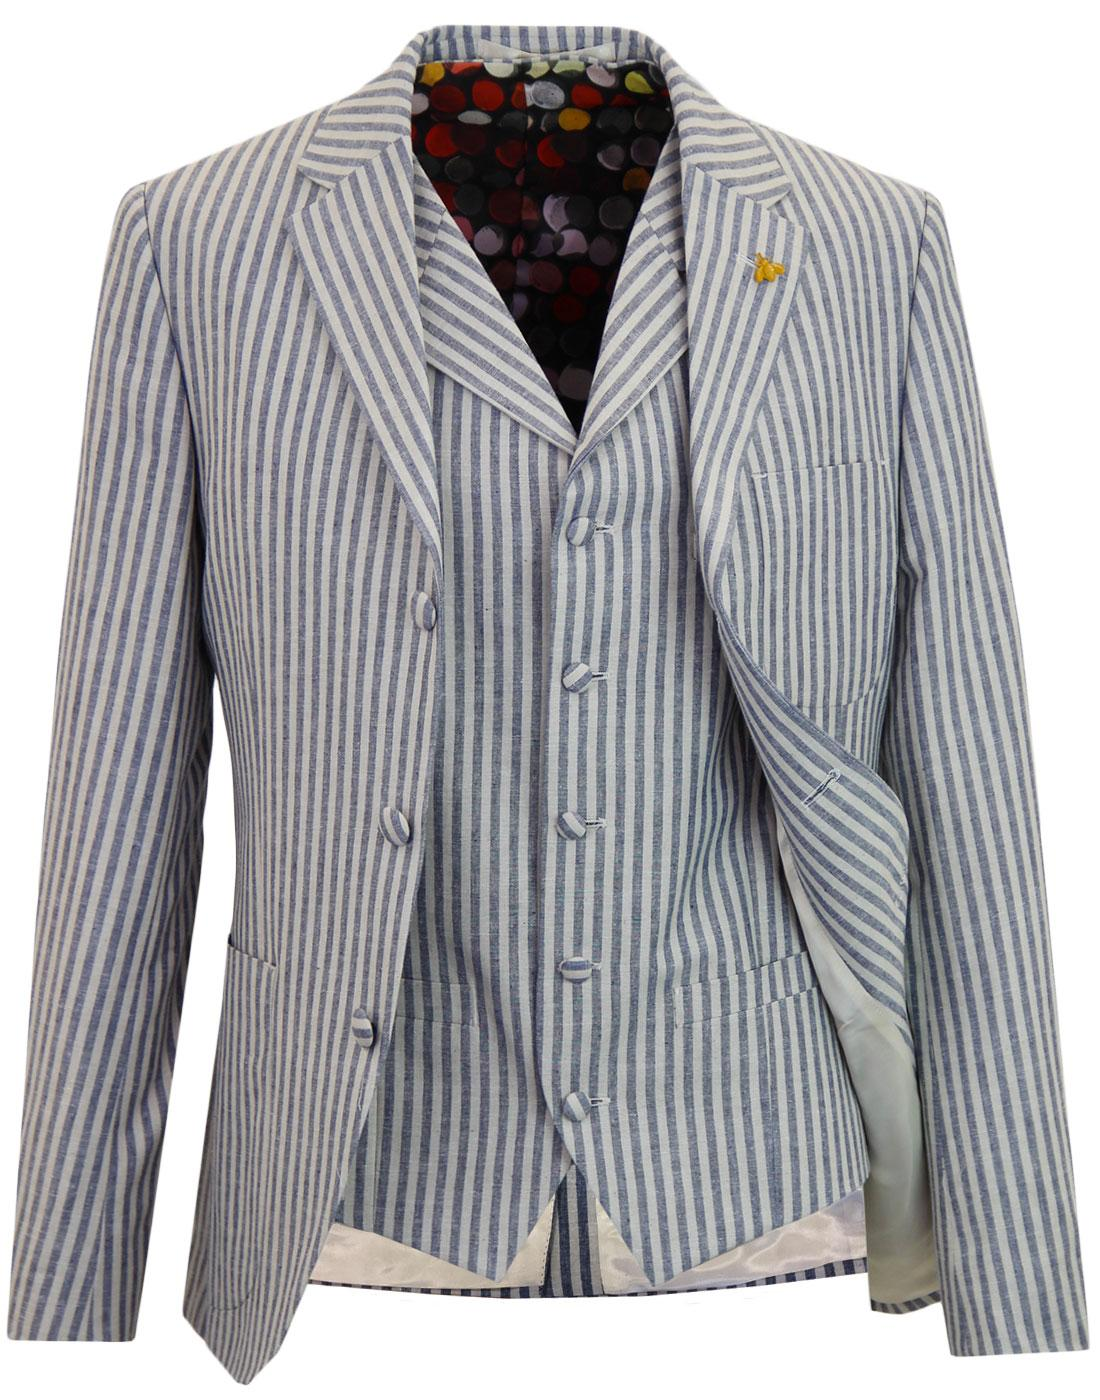 GIBSON LONDON 60s Mod Boating Blazer & Waistcoat